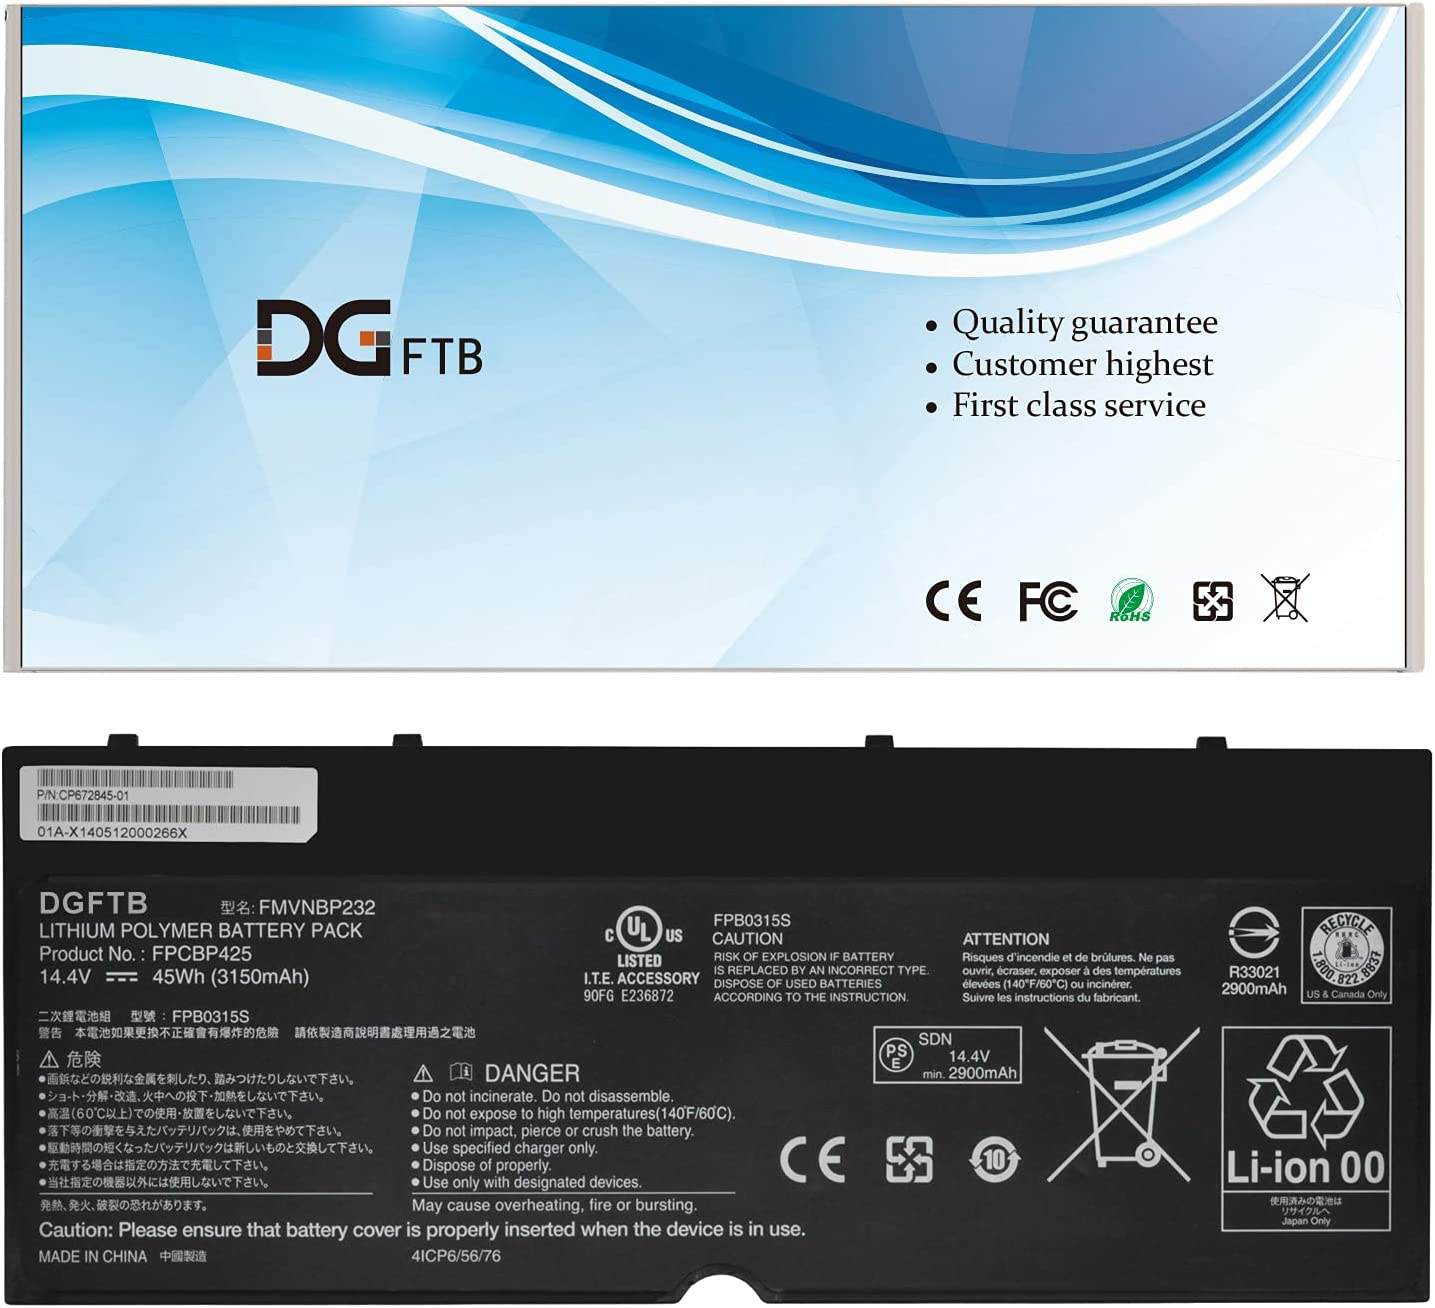 New FPCBP425 FMVNBP232 Columbus Mall Laptop Battery In a popularity with Li Compatible Fujitsu